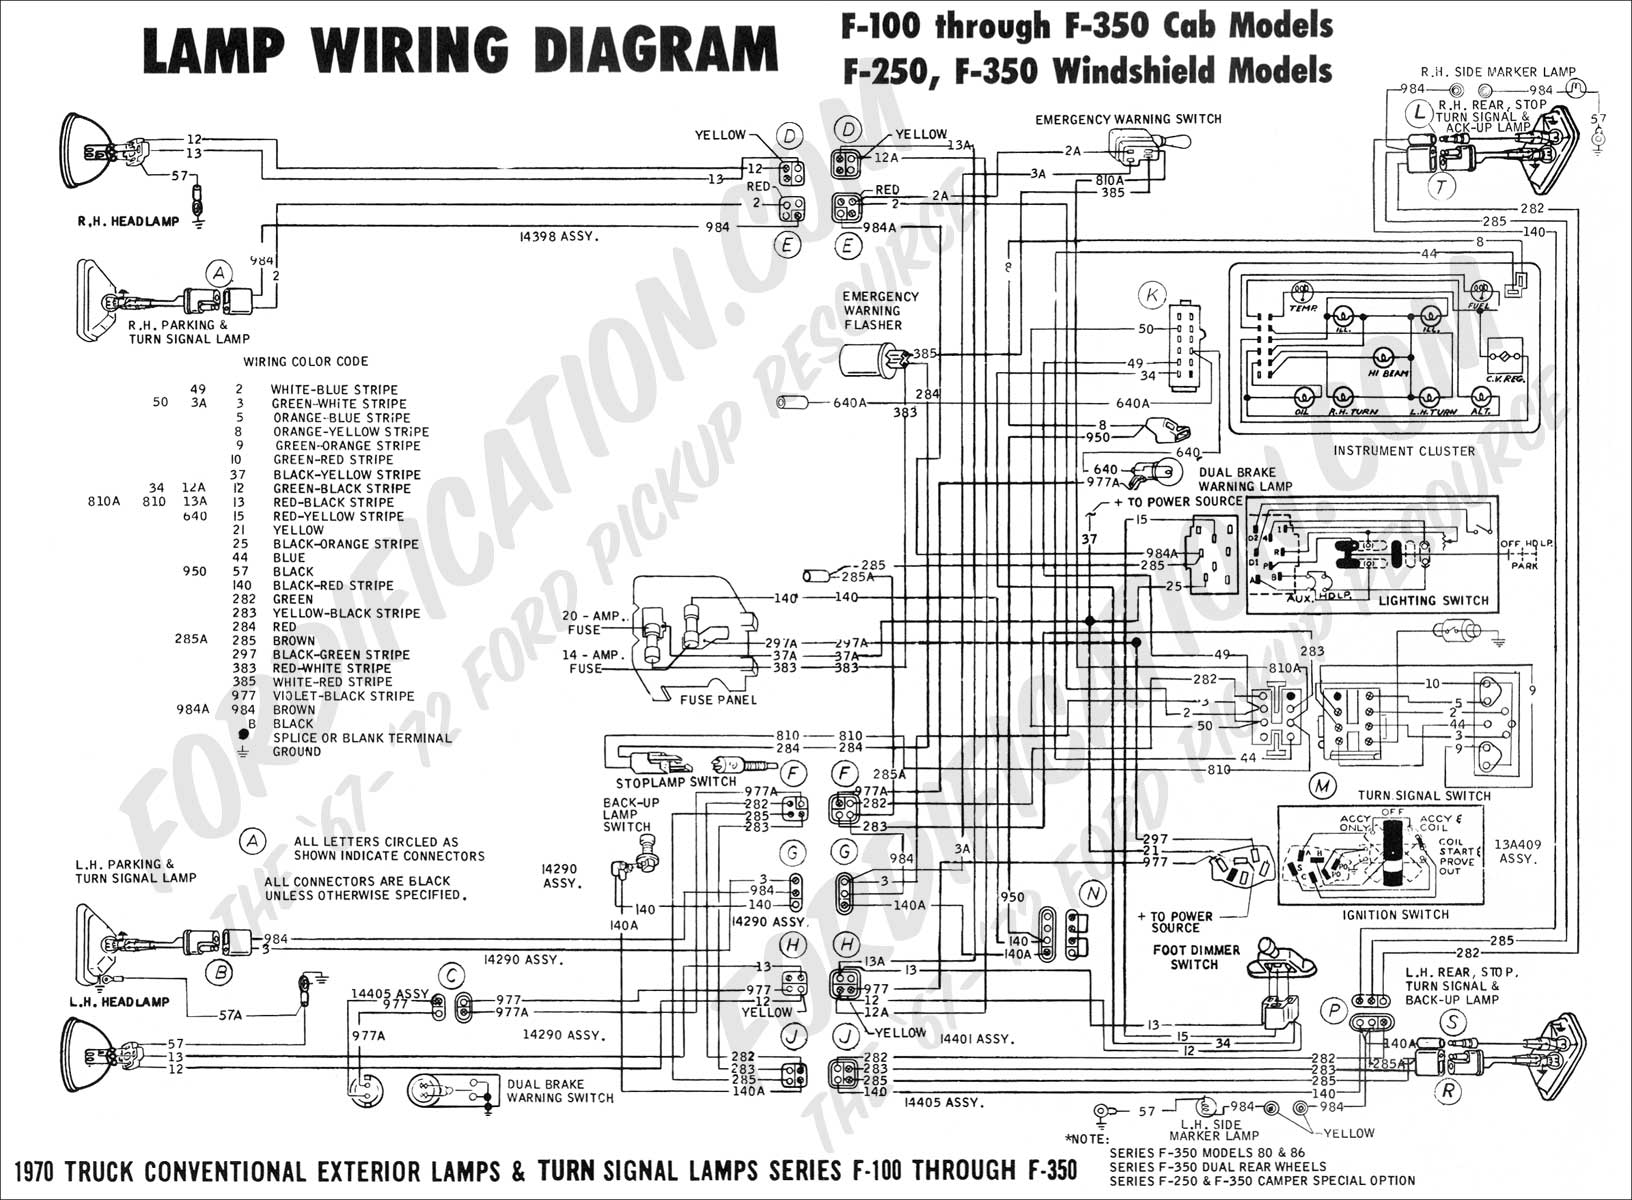 ford f 350 wiring diagram audio 1978 ford f 350 wiring diagram ford truck technical drawings and schematics - section h ... #12